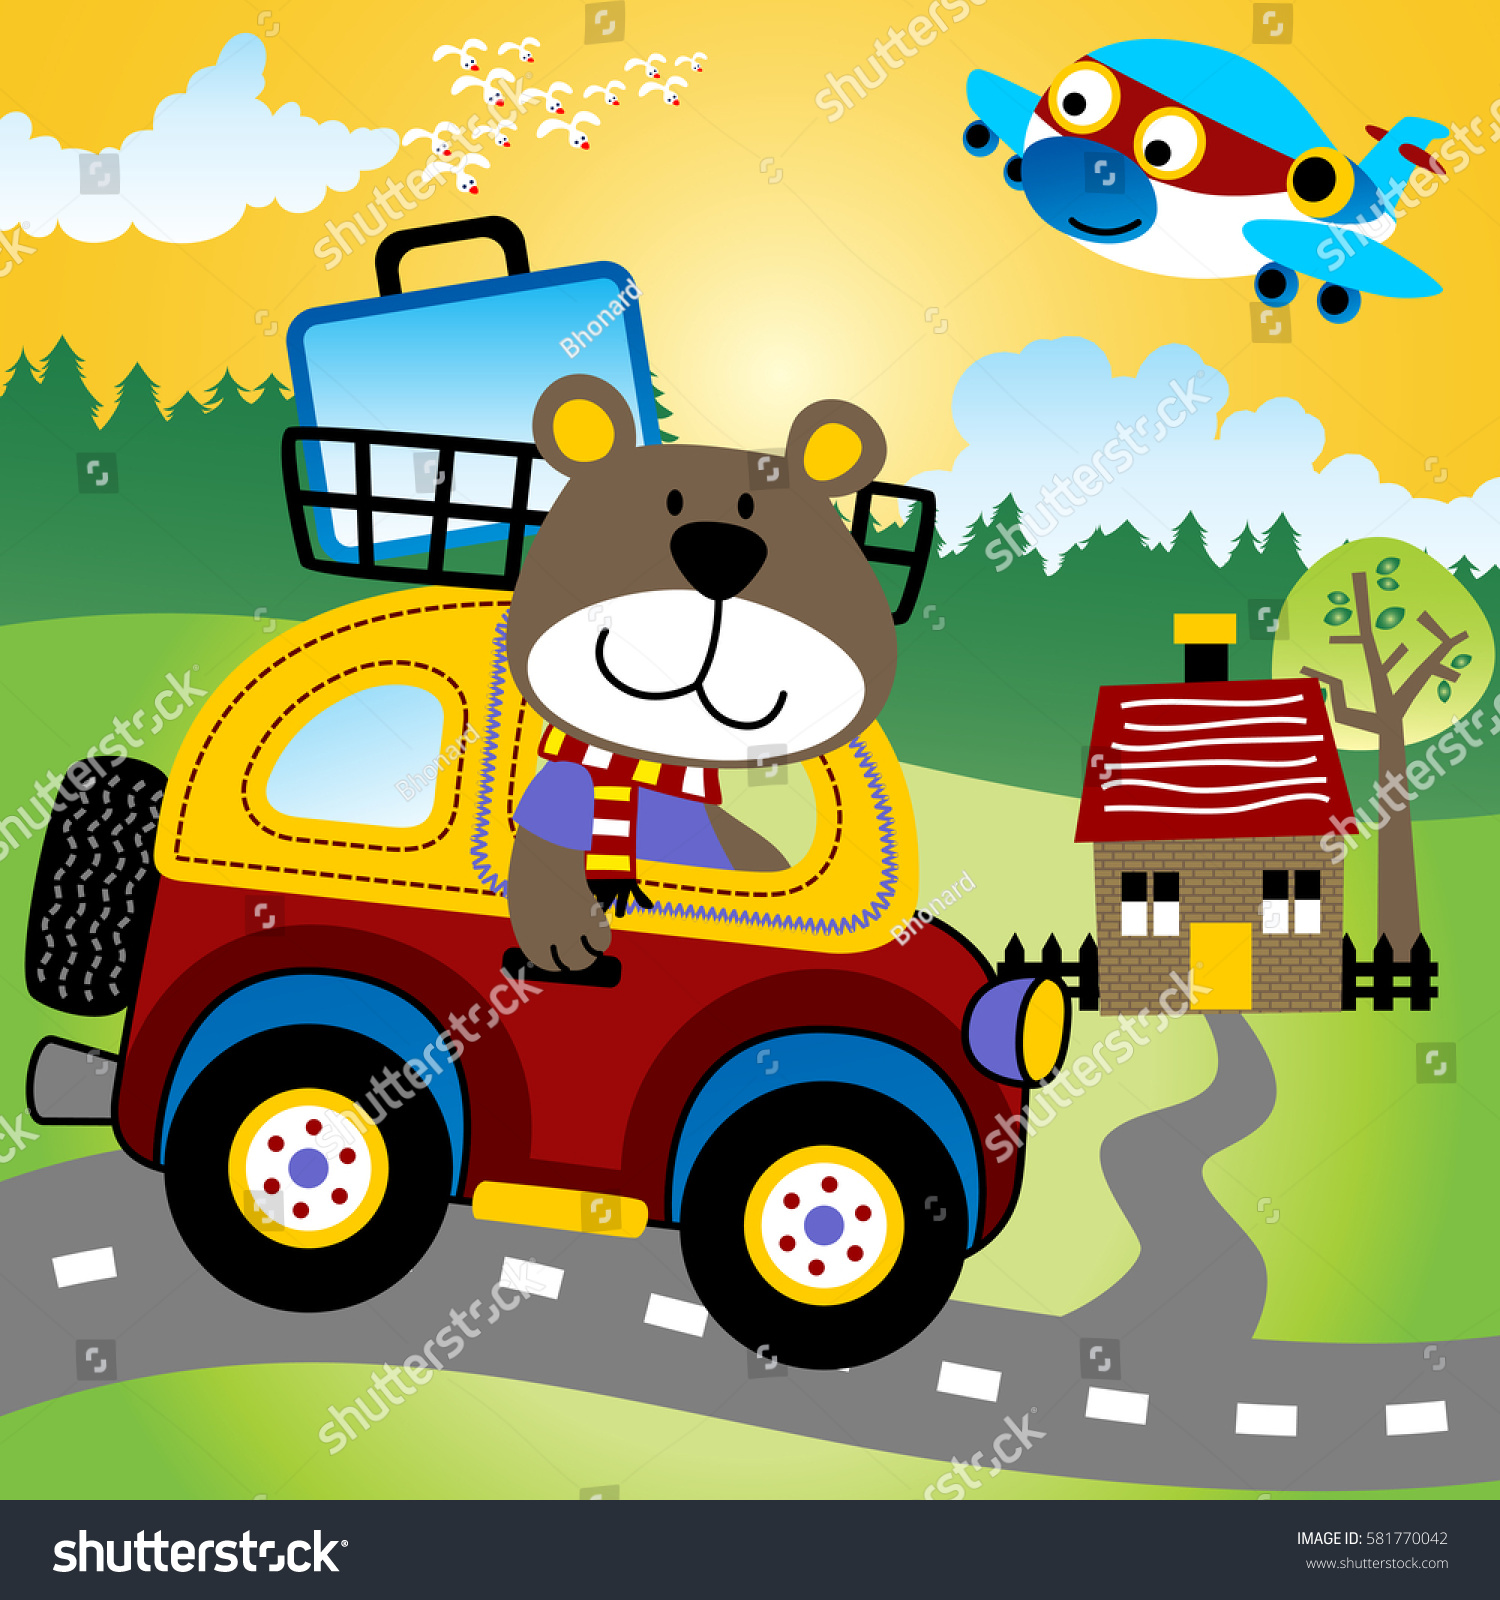 bear riding a little car back to hometown with a suitcase on top design for